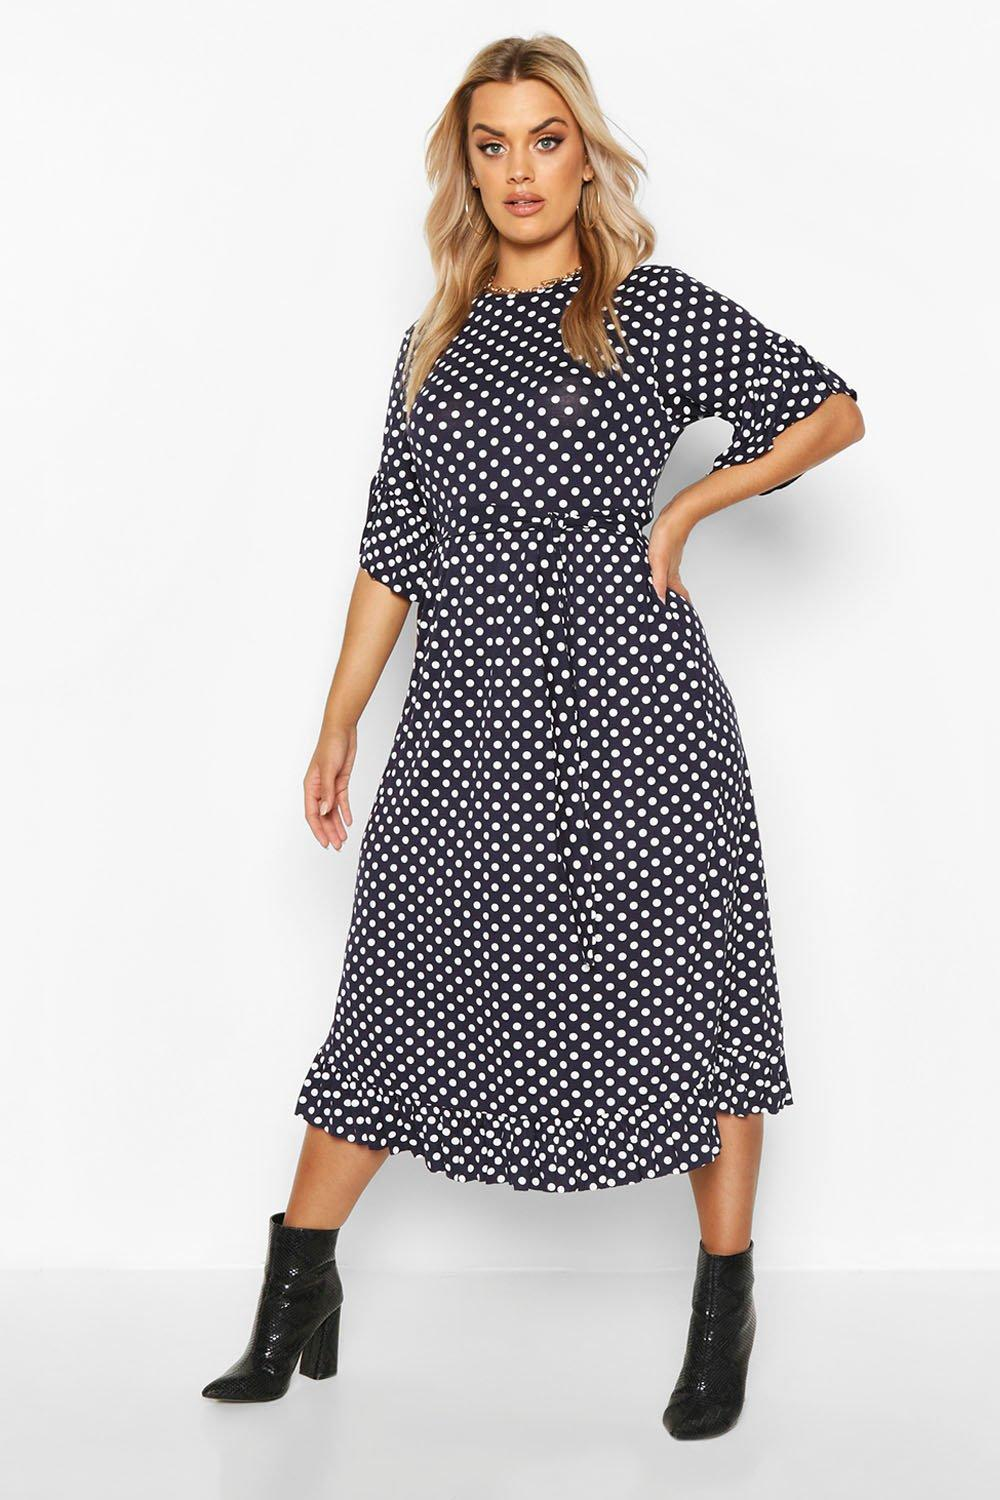 1920s Day Dresses, Tea Dresses, Mature Dresses with Sleeves Womens Plus Polka Dot Ruffle Midi Smock Dress - navy - 14 $42.00 AT vintagedancer.com